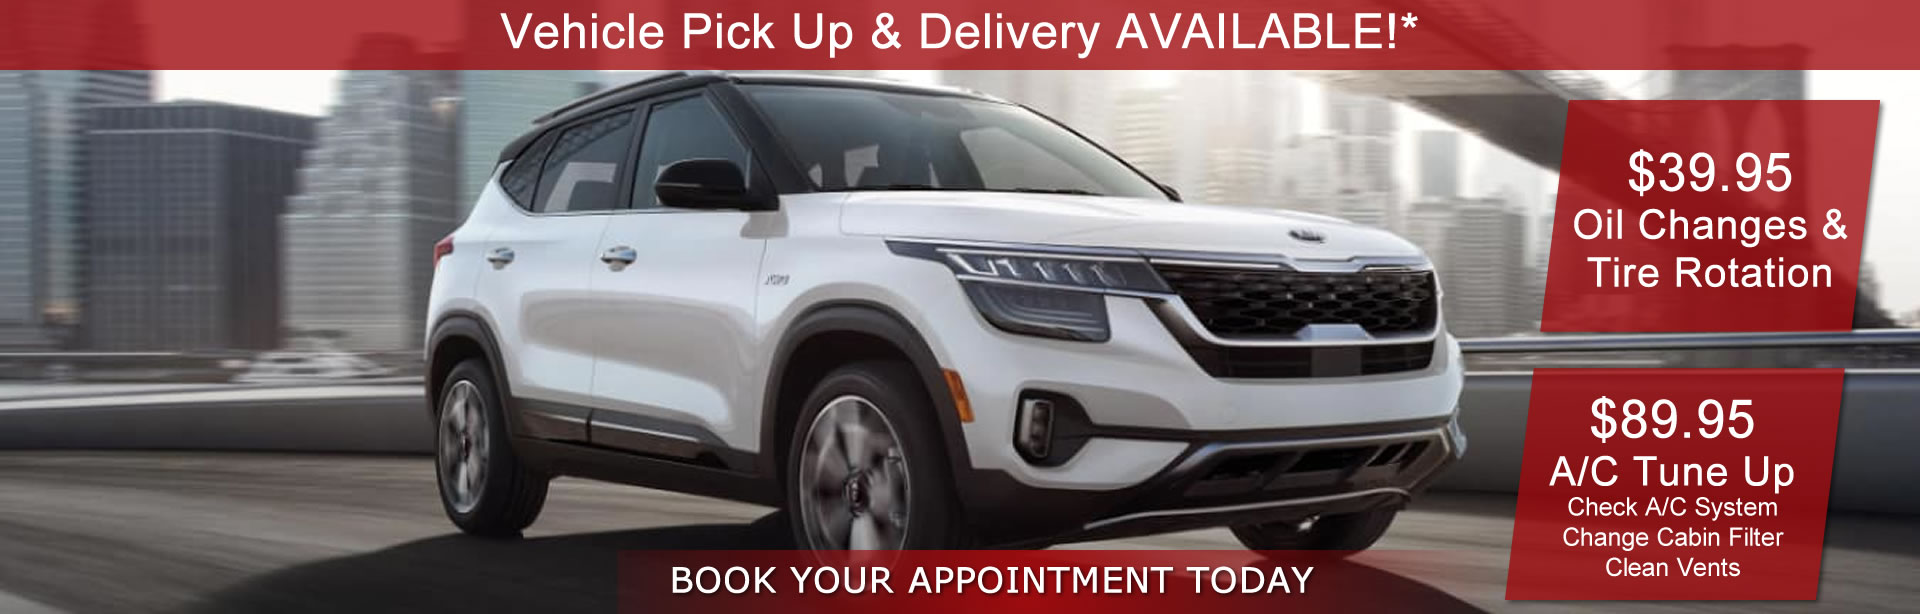 Vehicle Pick Up and Delivery Murphy NC